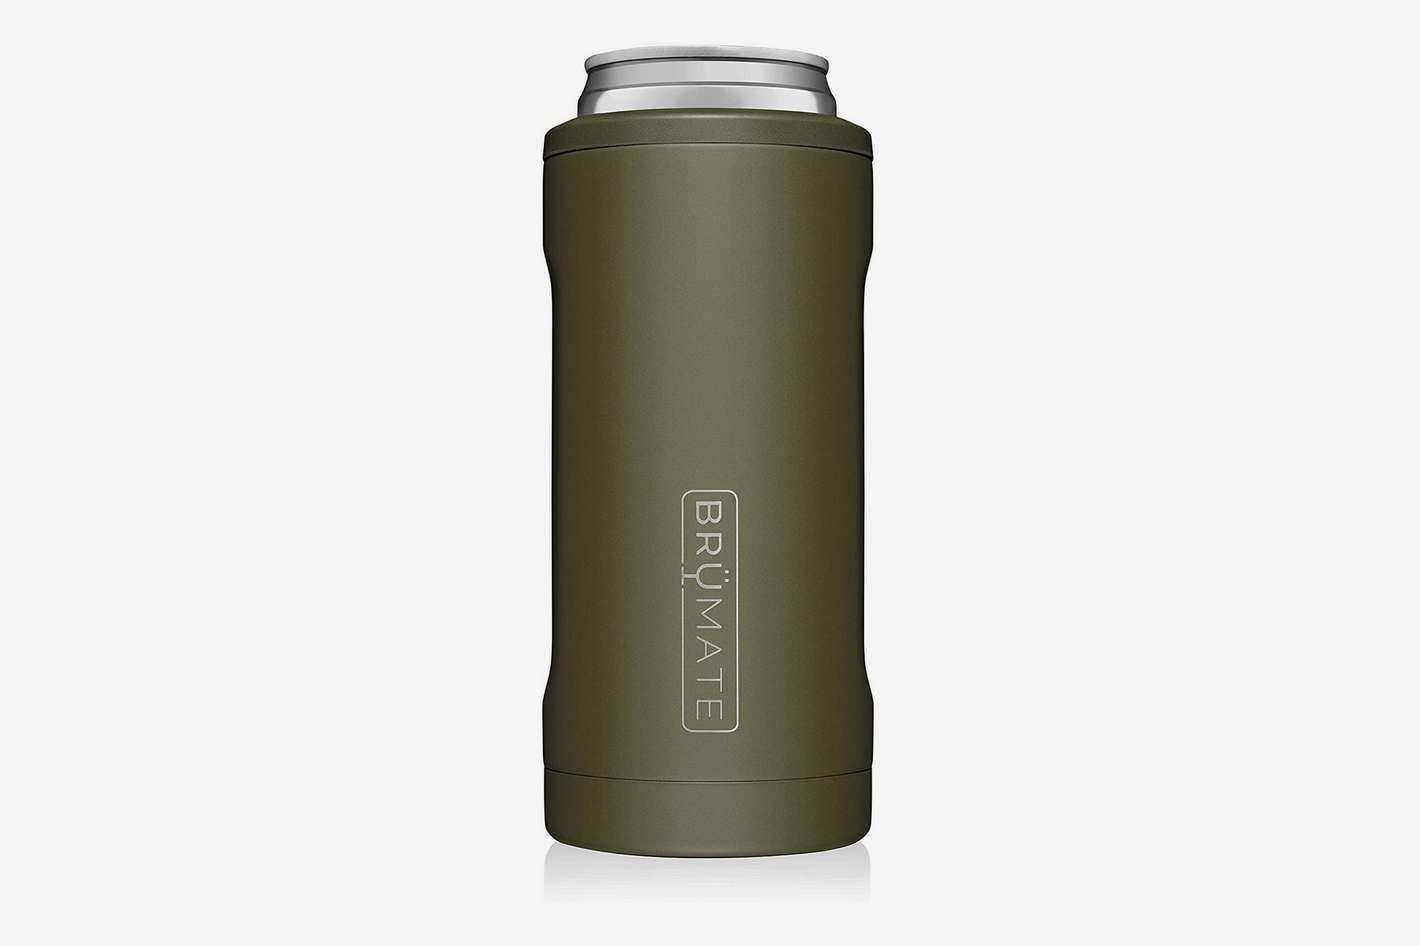 BrüMate Hopsulator Slim Stainless Steel Insulated Can Cooler, OD Green